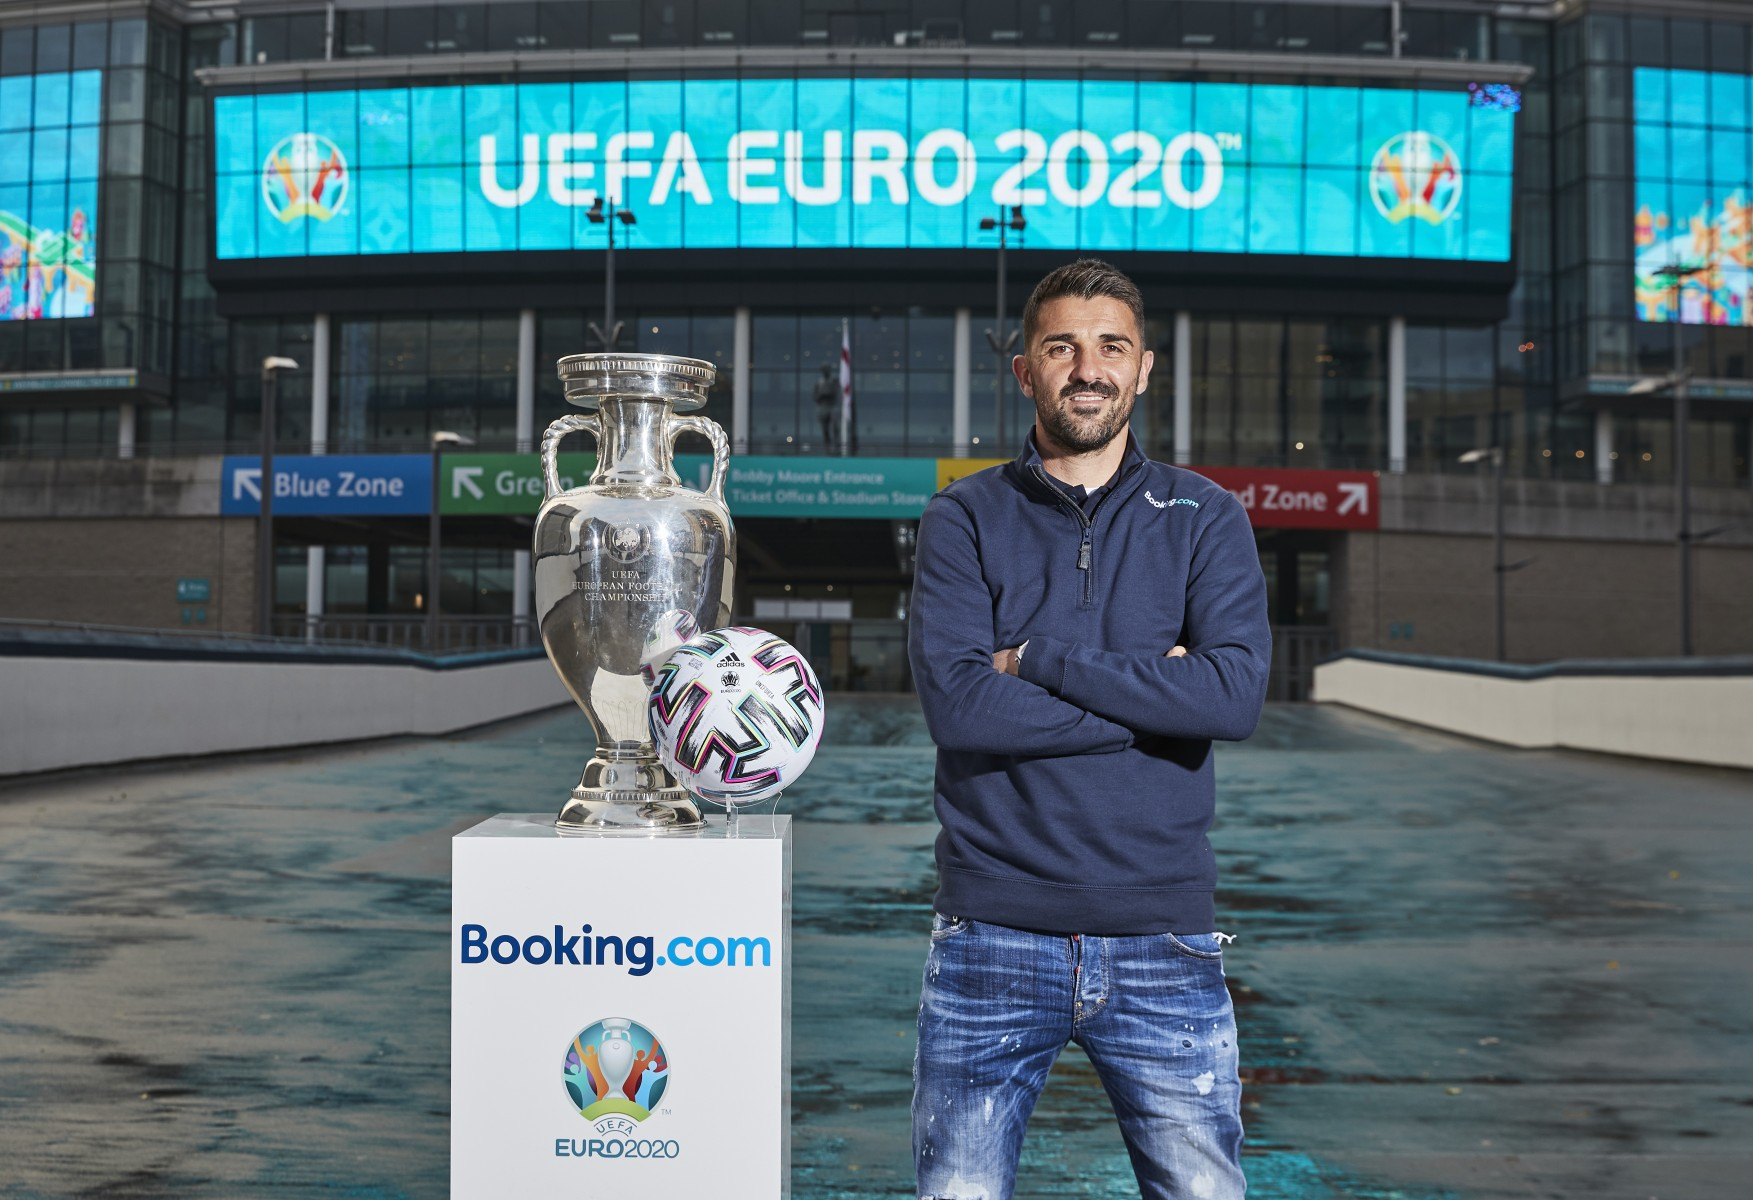 Booking.com Global Ambassador for UEFA Euro 2020 David Villa